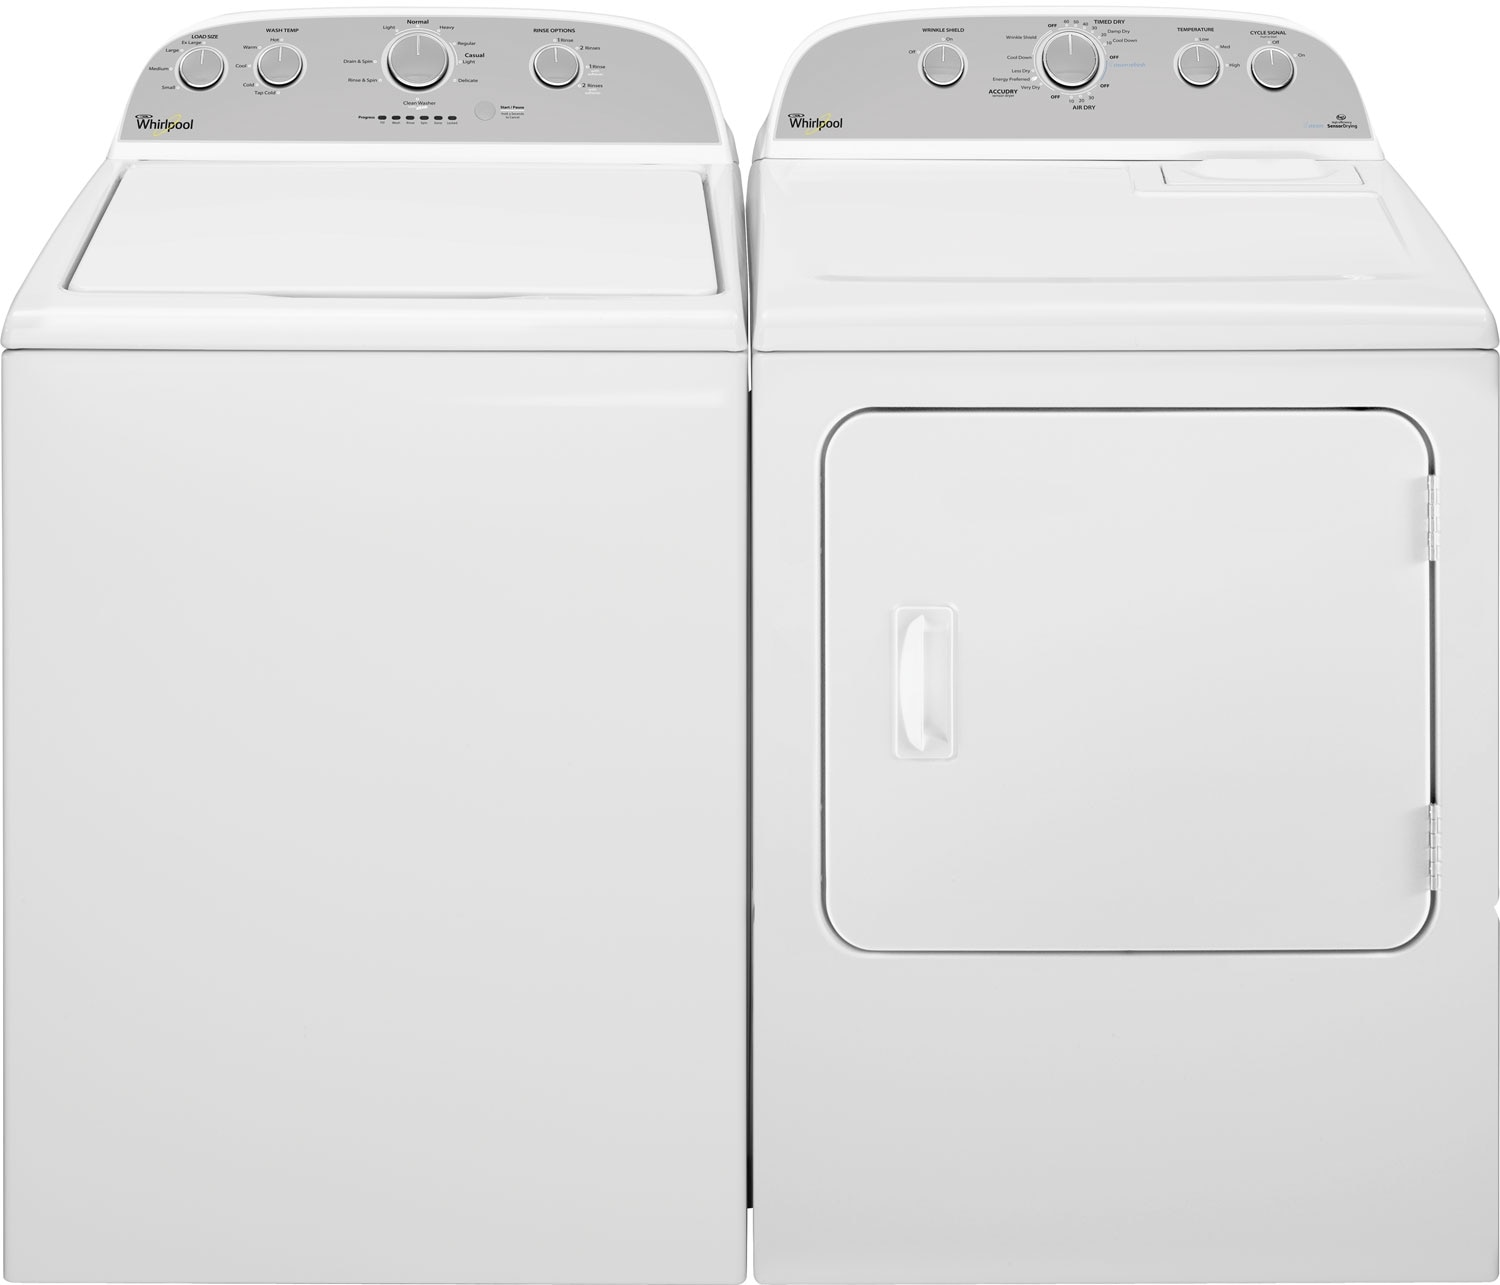 Whirlpool® Cabrio® 5.0 Cu. Ft. Top-Load Washer and 7.0 Cu. Ft. Dryer – White